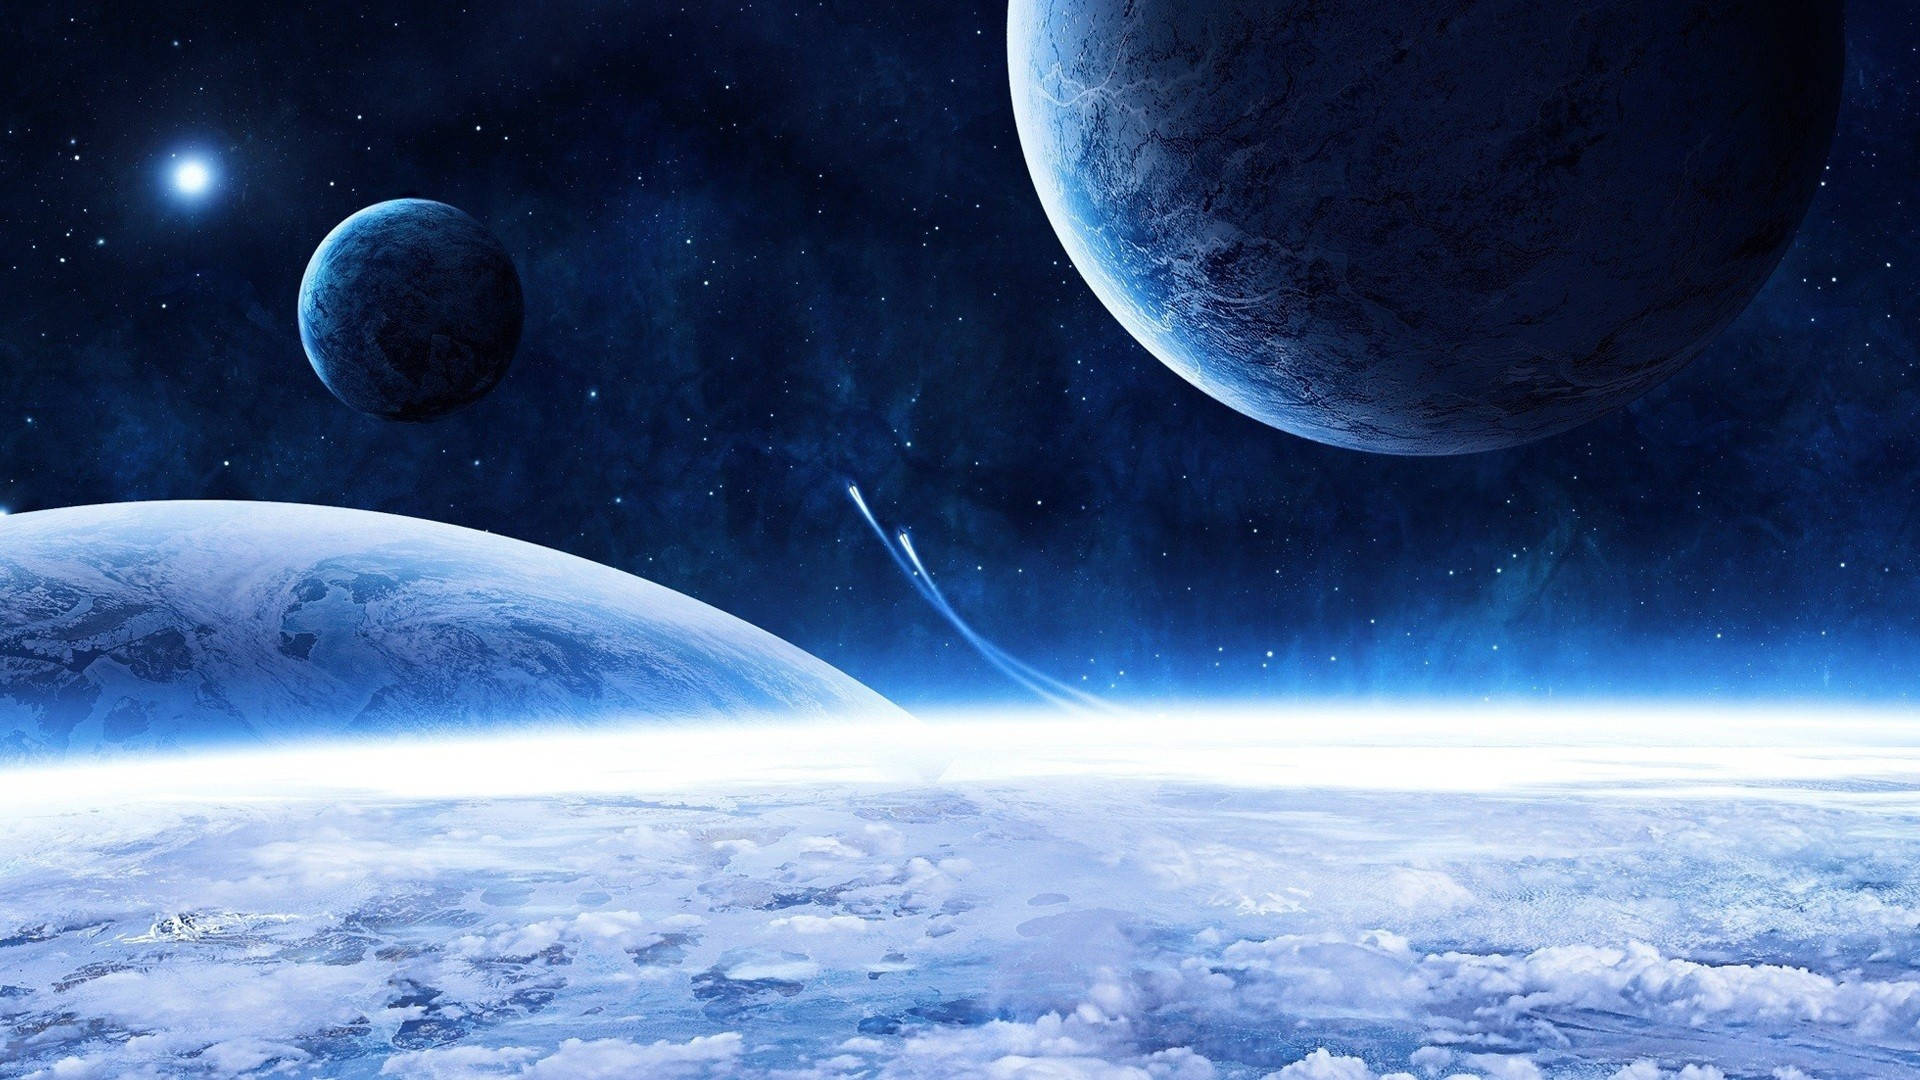 Space Wallpapers Collection (mostly 1920×1080) – Album on Imgur